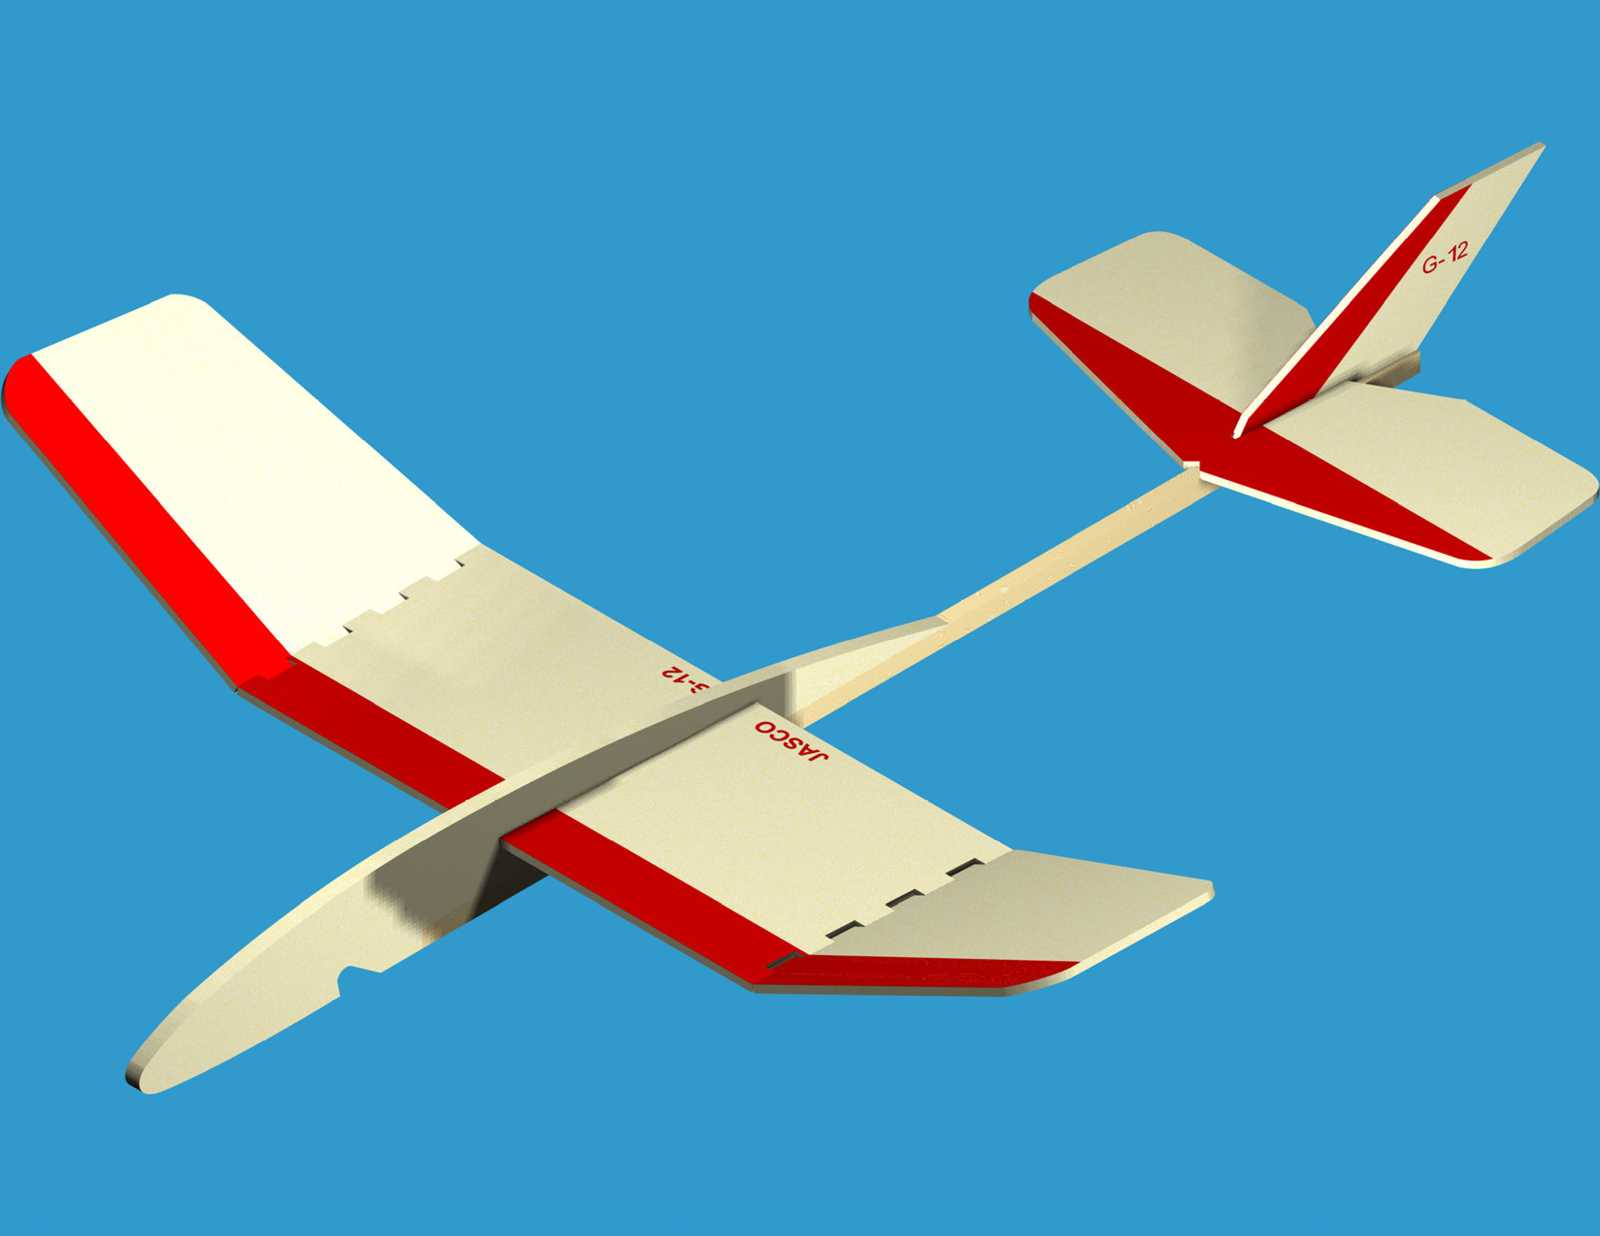 catapult balsa glider plans